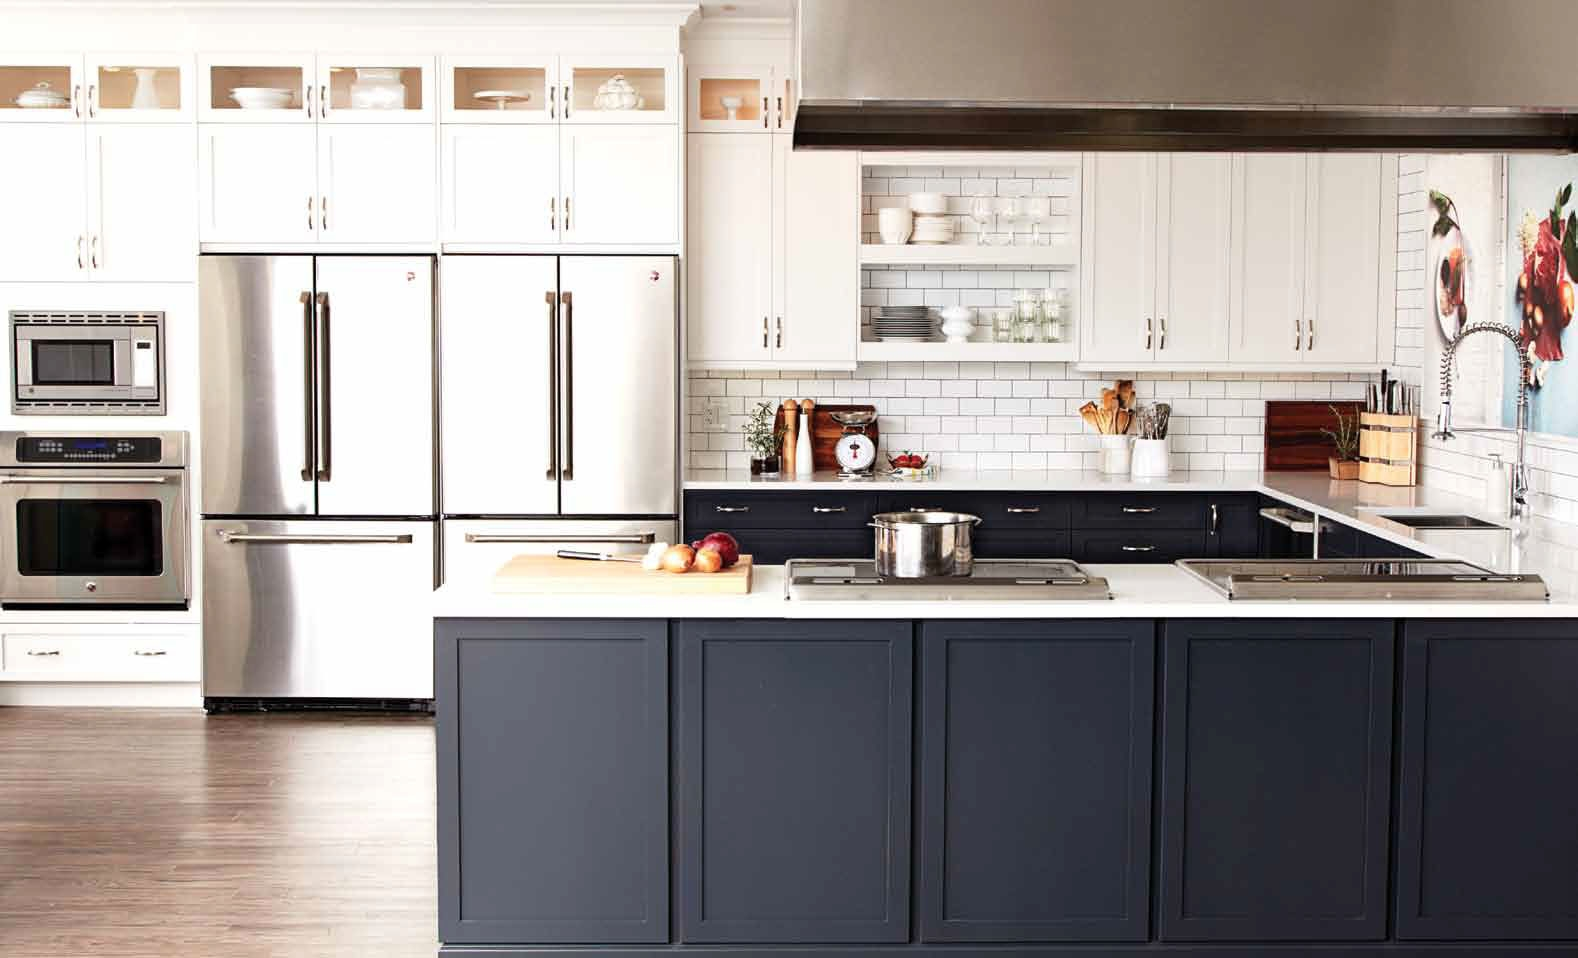 Permalink to Black And White Kitchen Cabinet Images